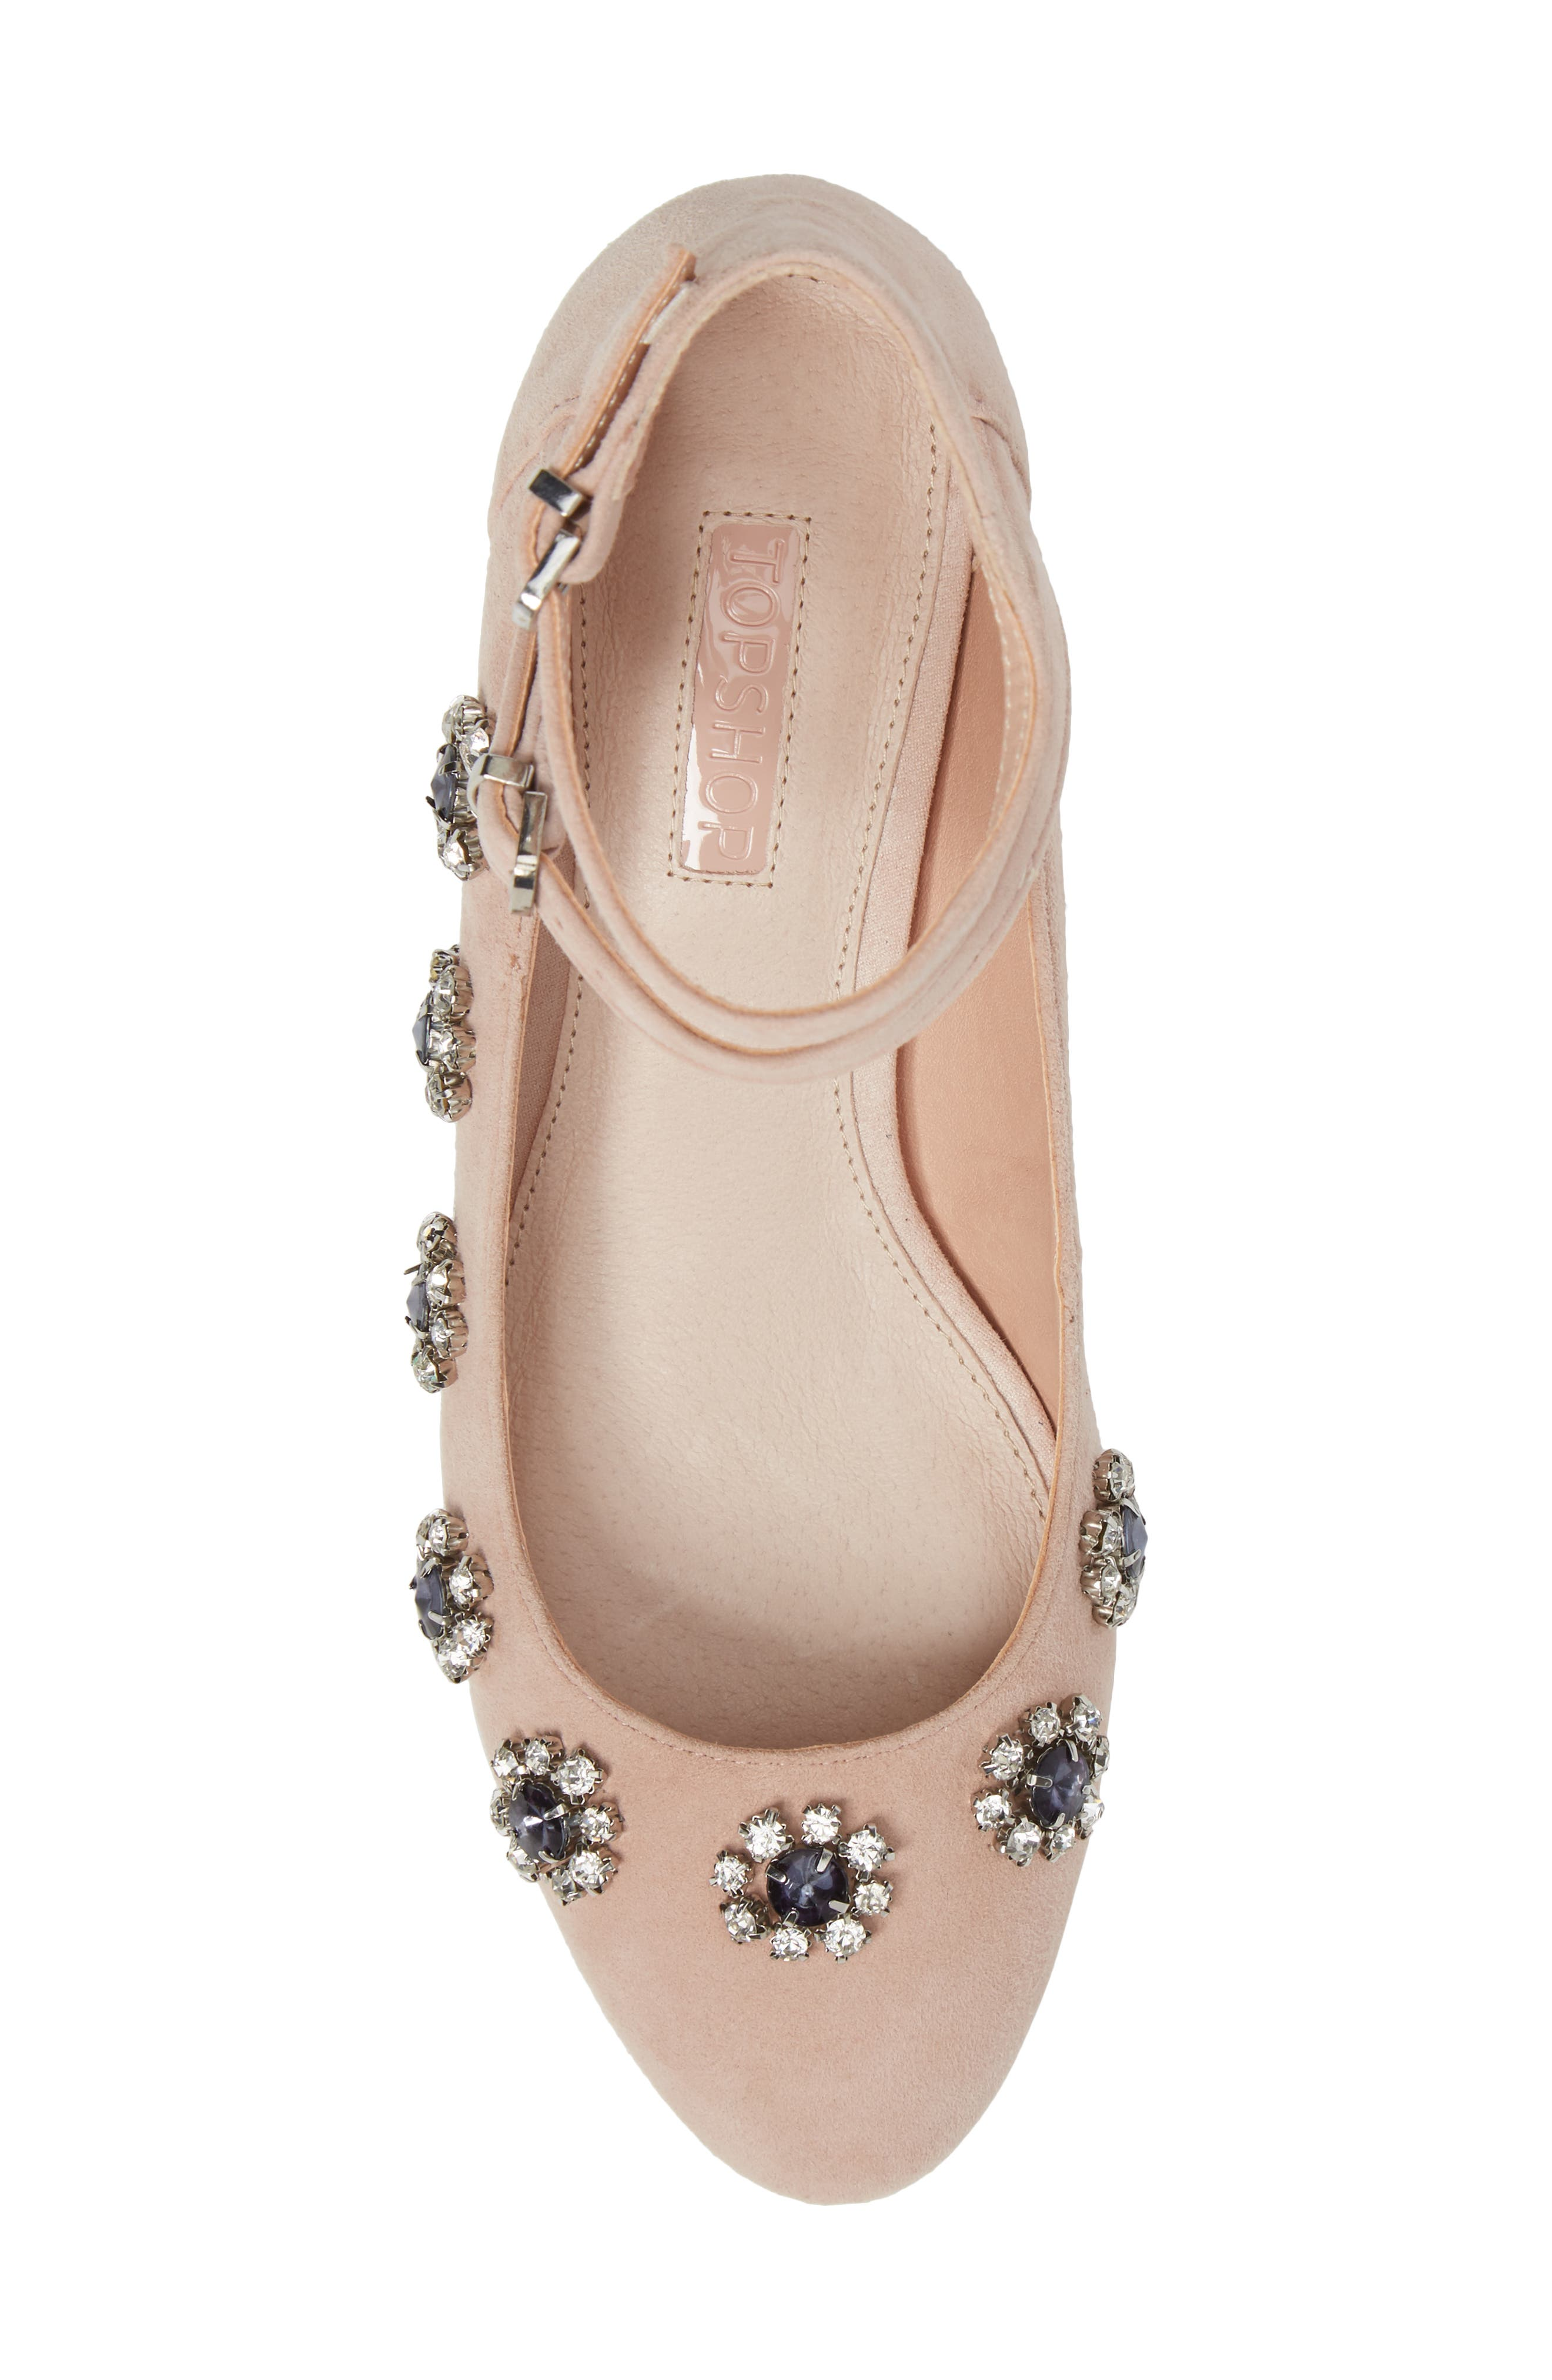 Jaida Crystal Embellished Pump,                             Alternate thumbnail 5, color,                             250